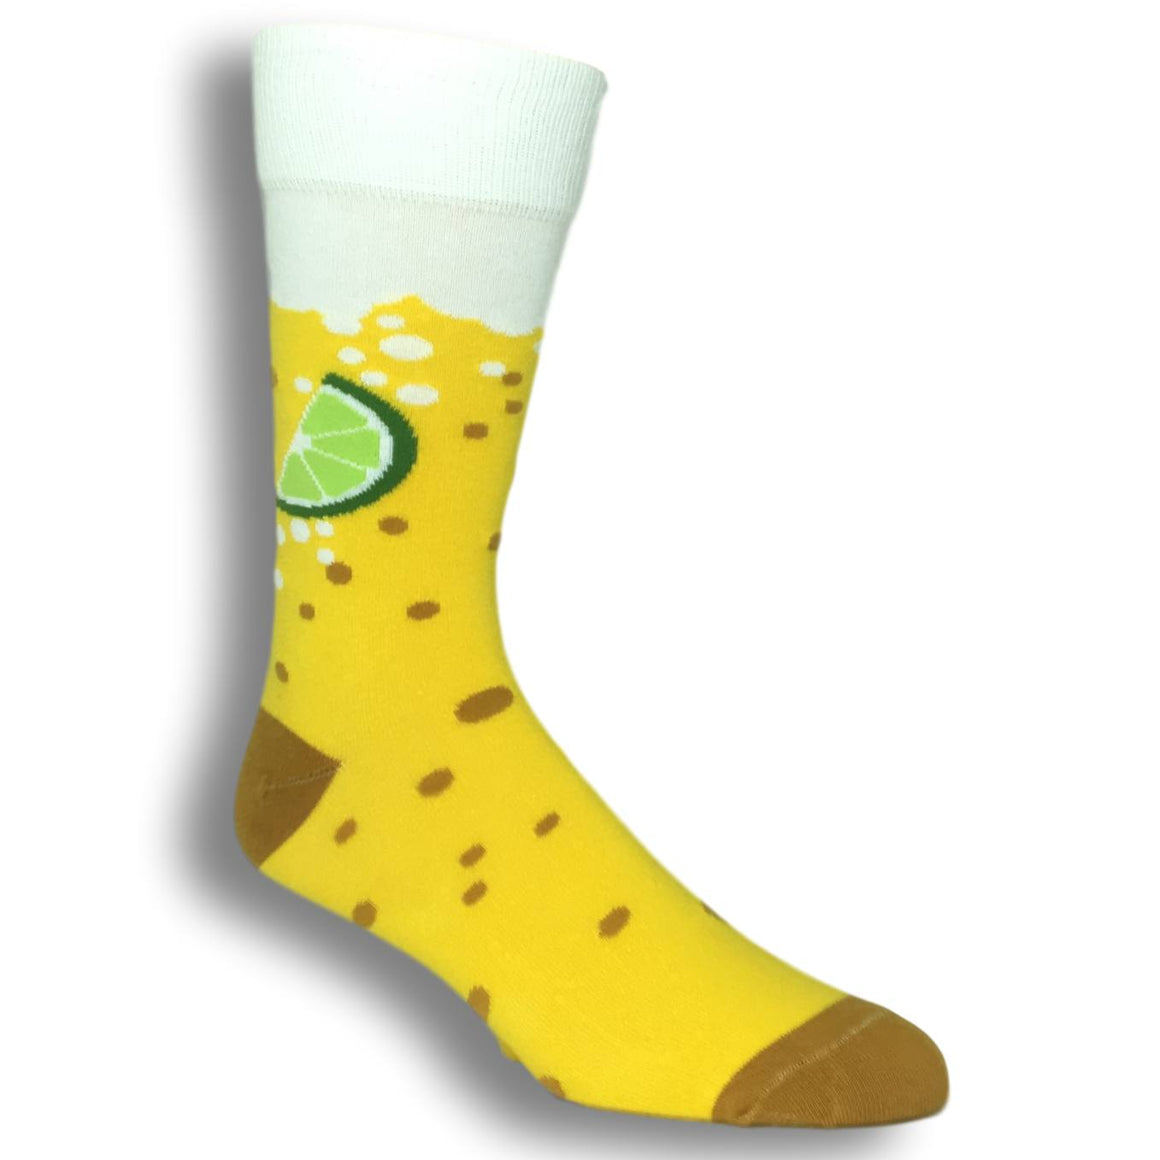 Beer and Lime Socks by Funatic - The Sock Spot